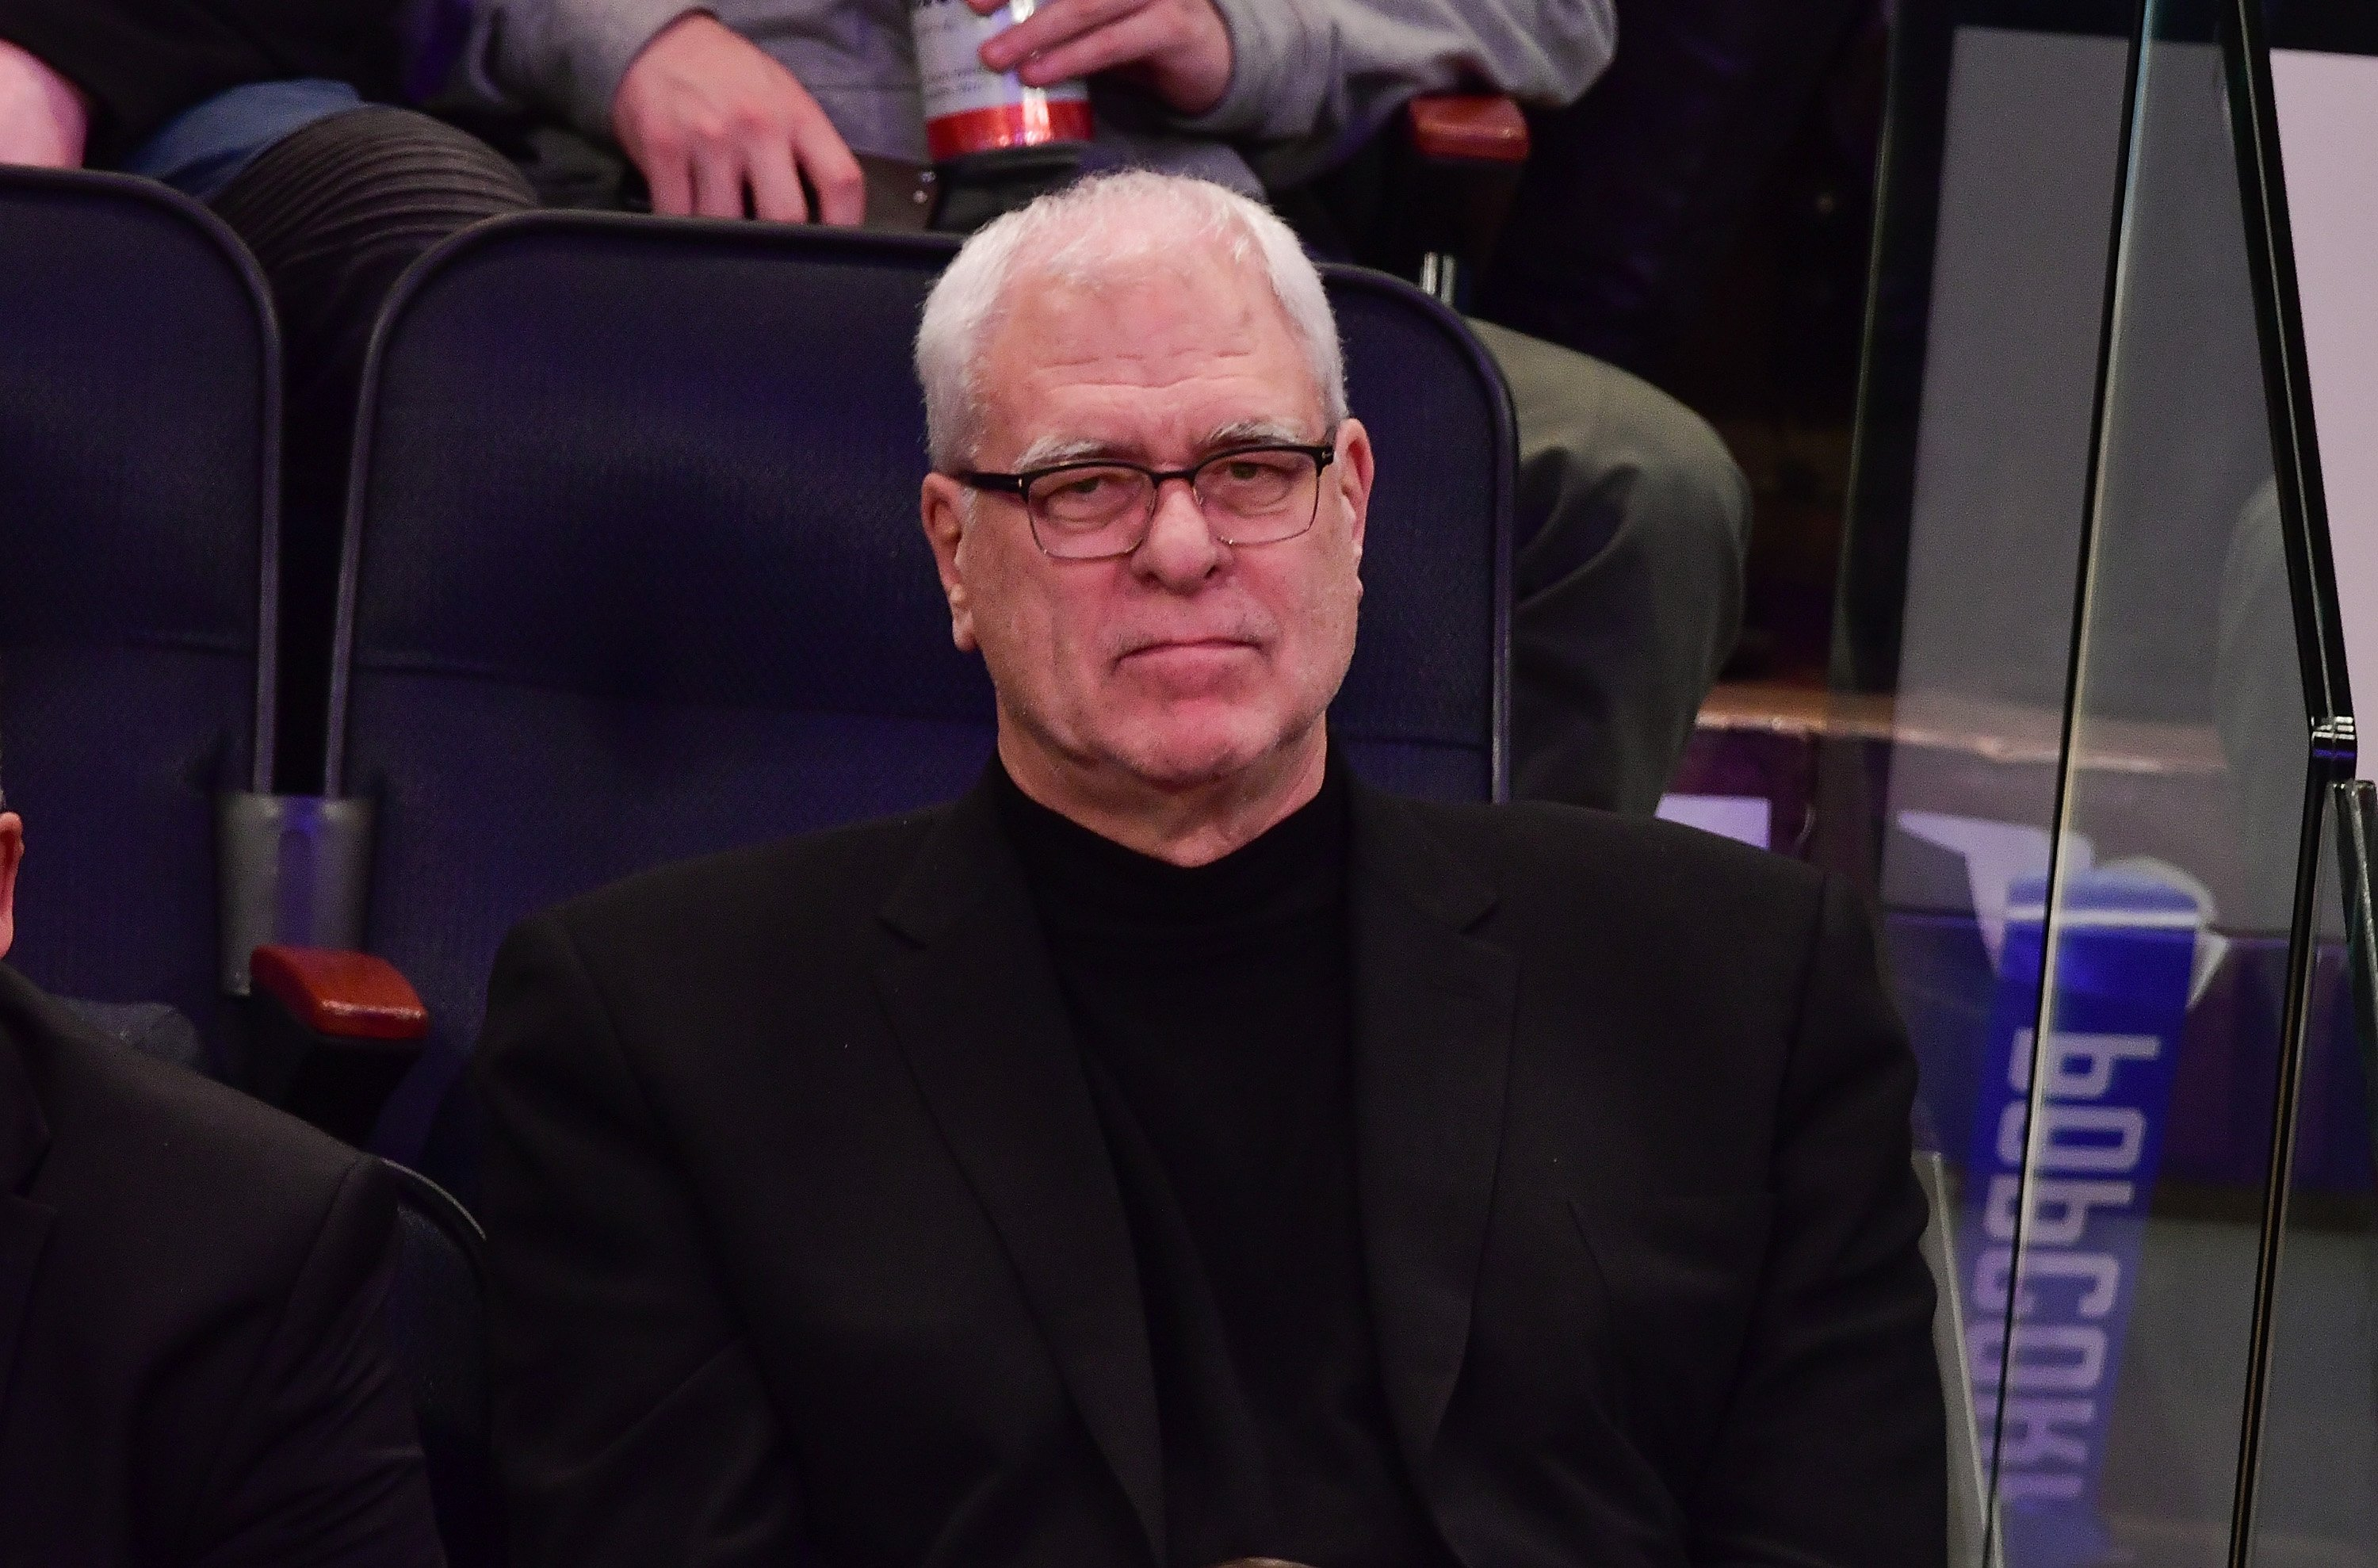 Phil Jackson attends Sacramento Kings vs New York Knicks game at Madison Square Garden on December 4, 2016 | Photo: Getty Images